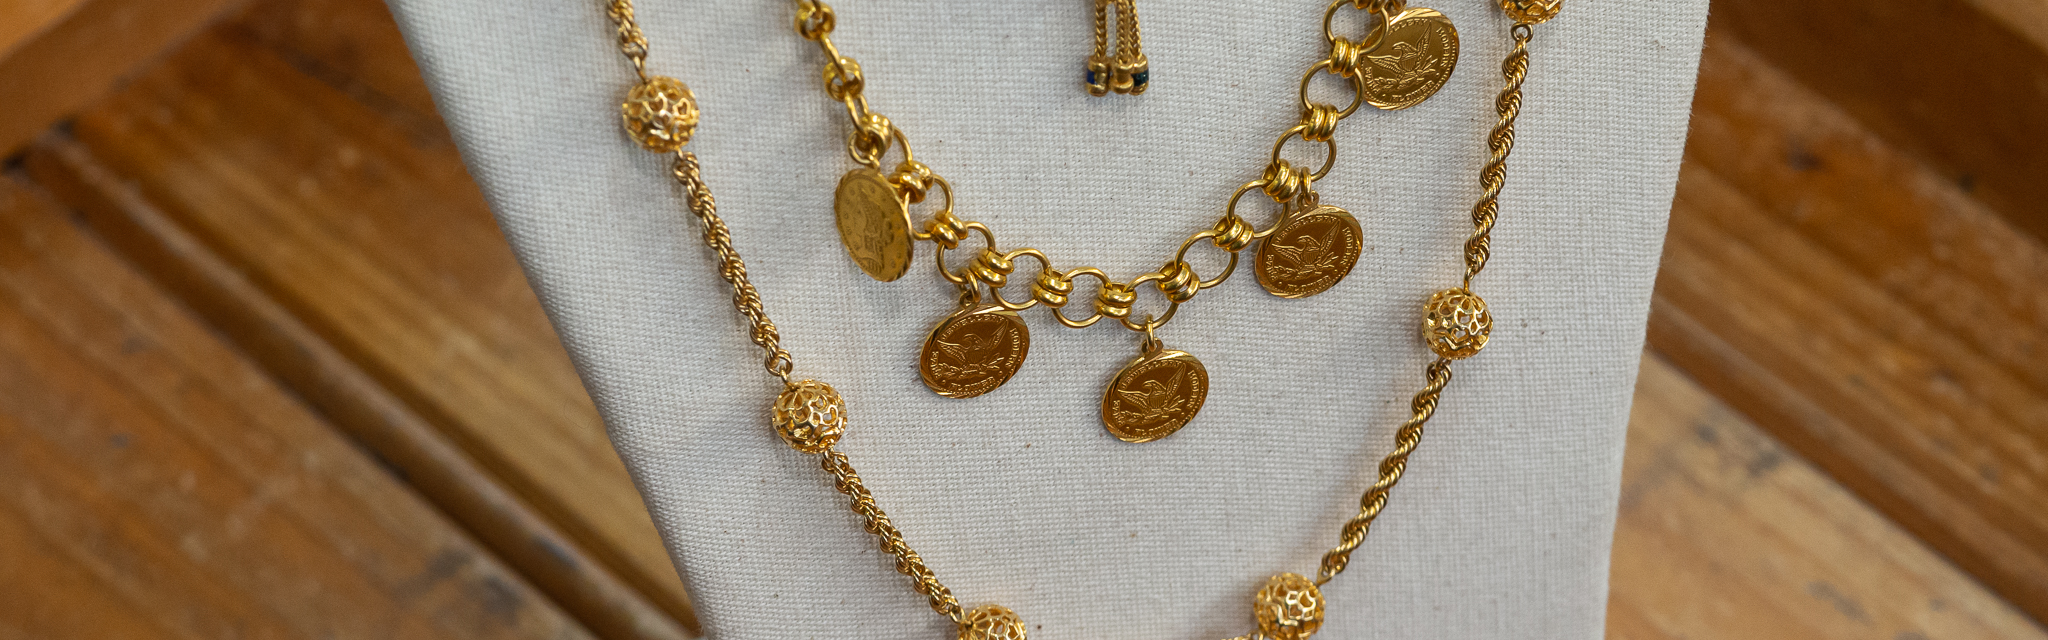 Gold Chains, necklaces and pre-love jewellery - Monty's Pawnbrokers